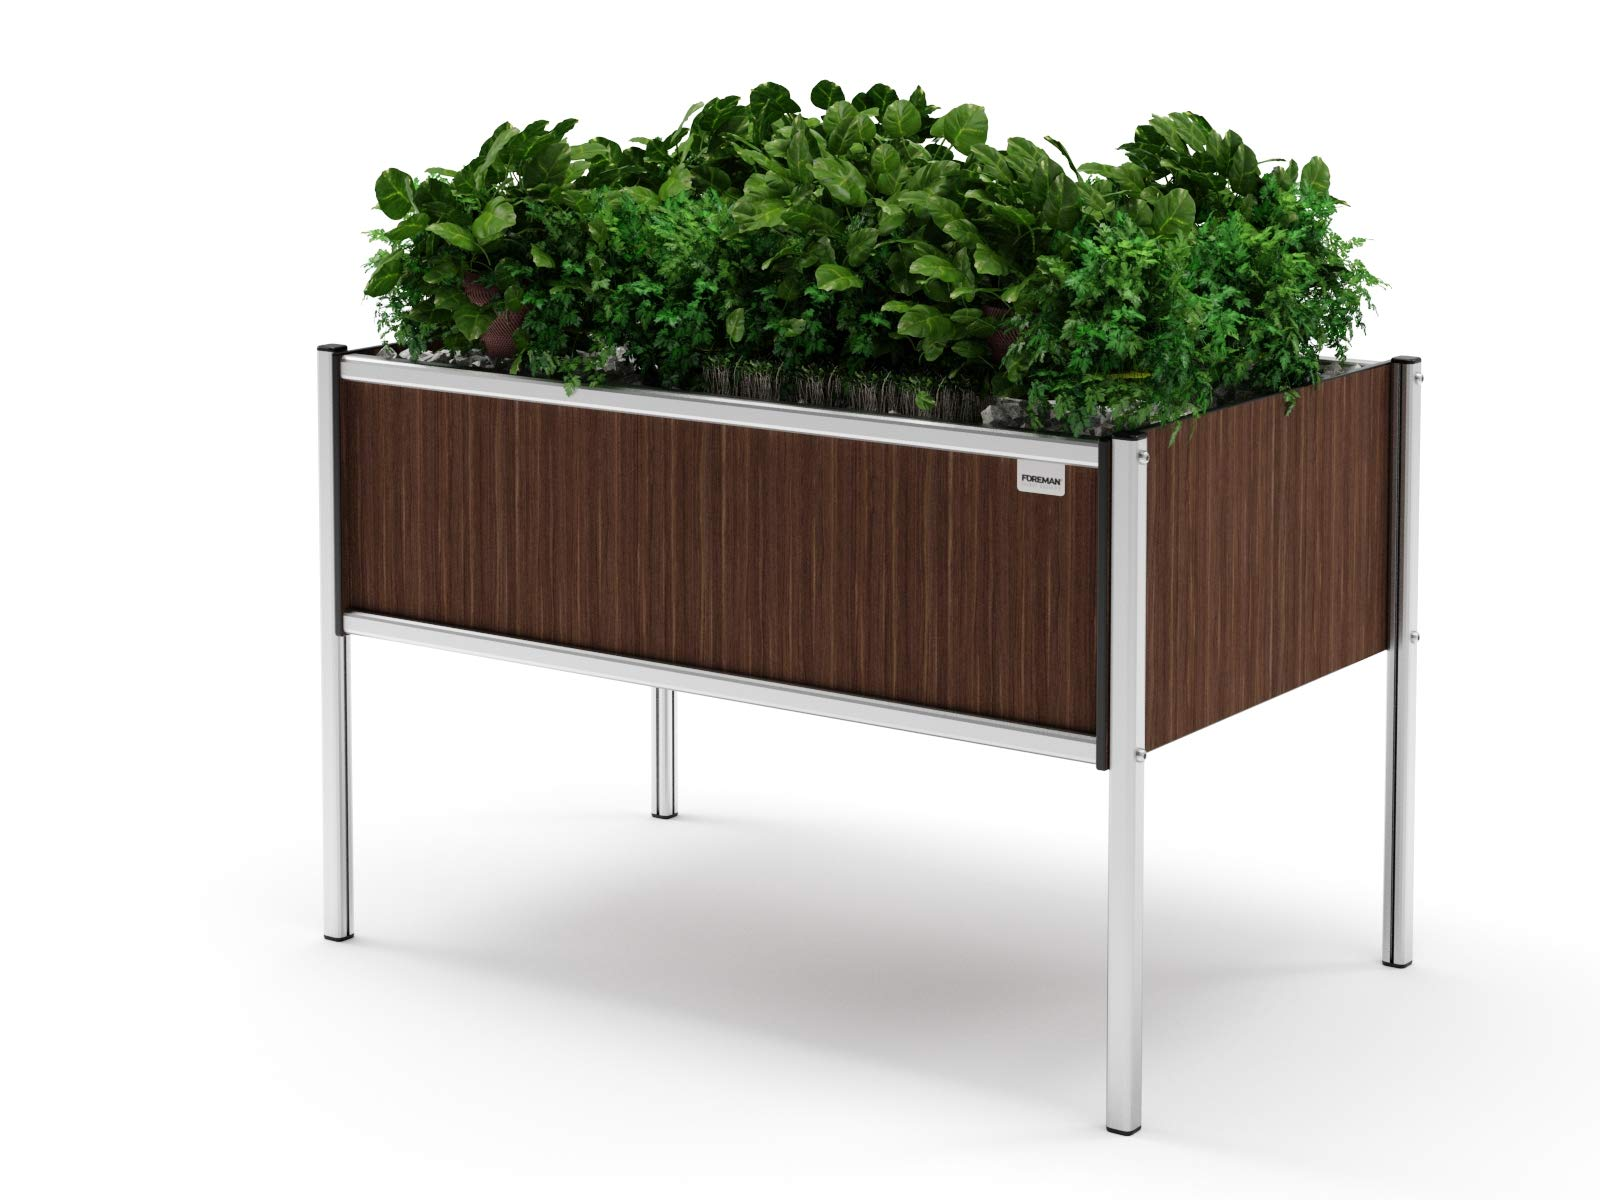 Foreman Garden Bed Planter Box Kit Made in The USA with a 20-Year Warranty HPL Plastic Wood Color Outdoor Indoor Planter Box (36''Lx24''Wx25''H, Tosca)